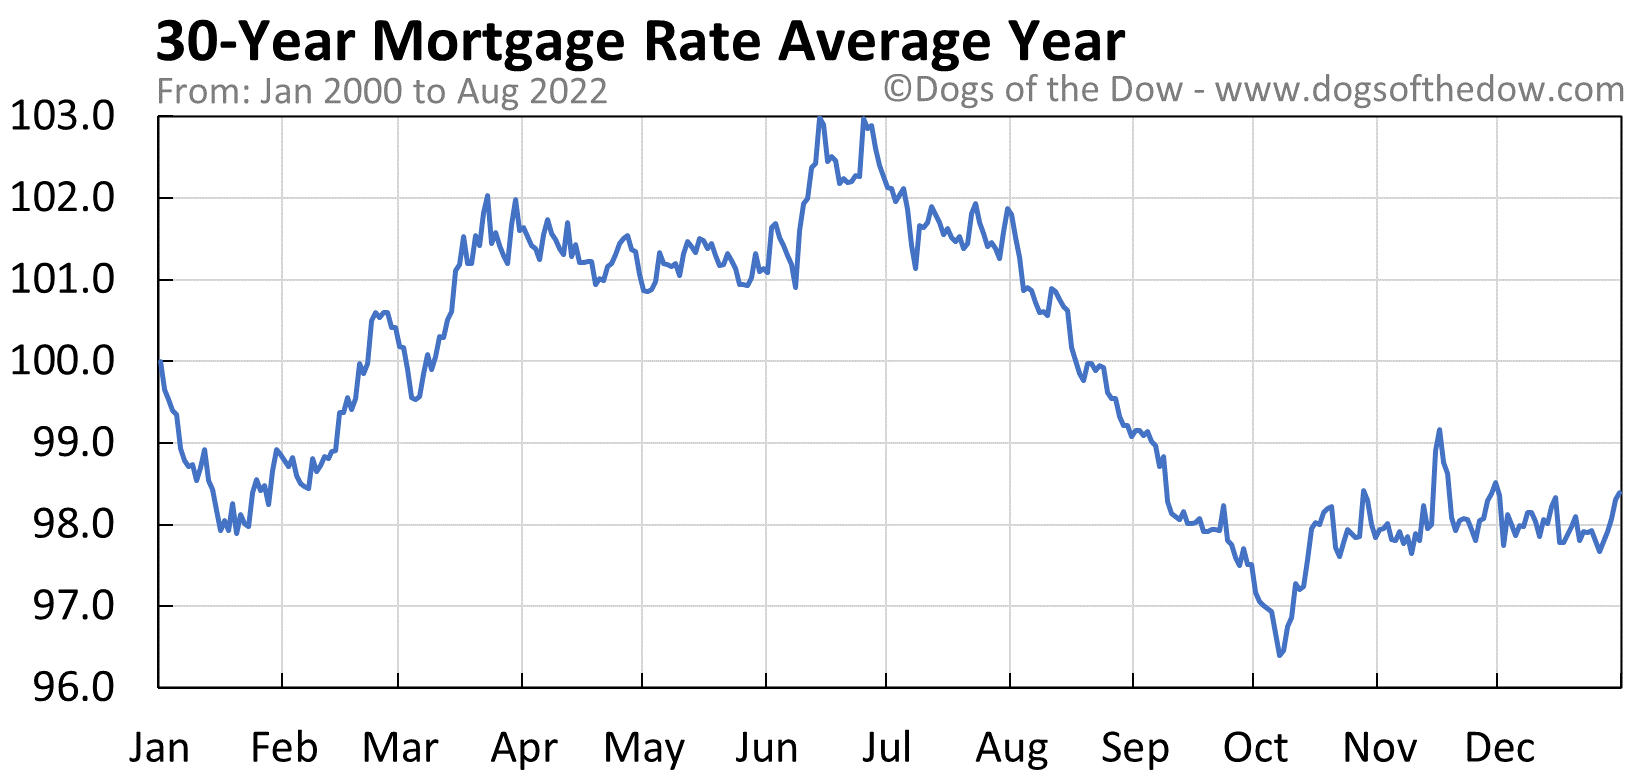 30-Year Mortgage Rate average year chart